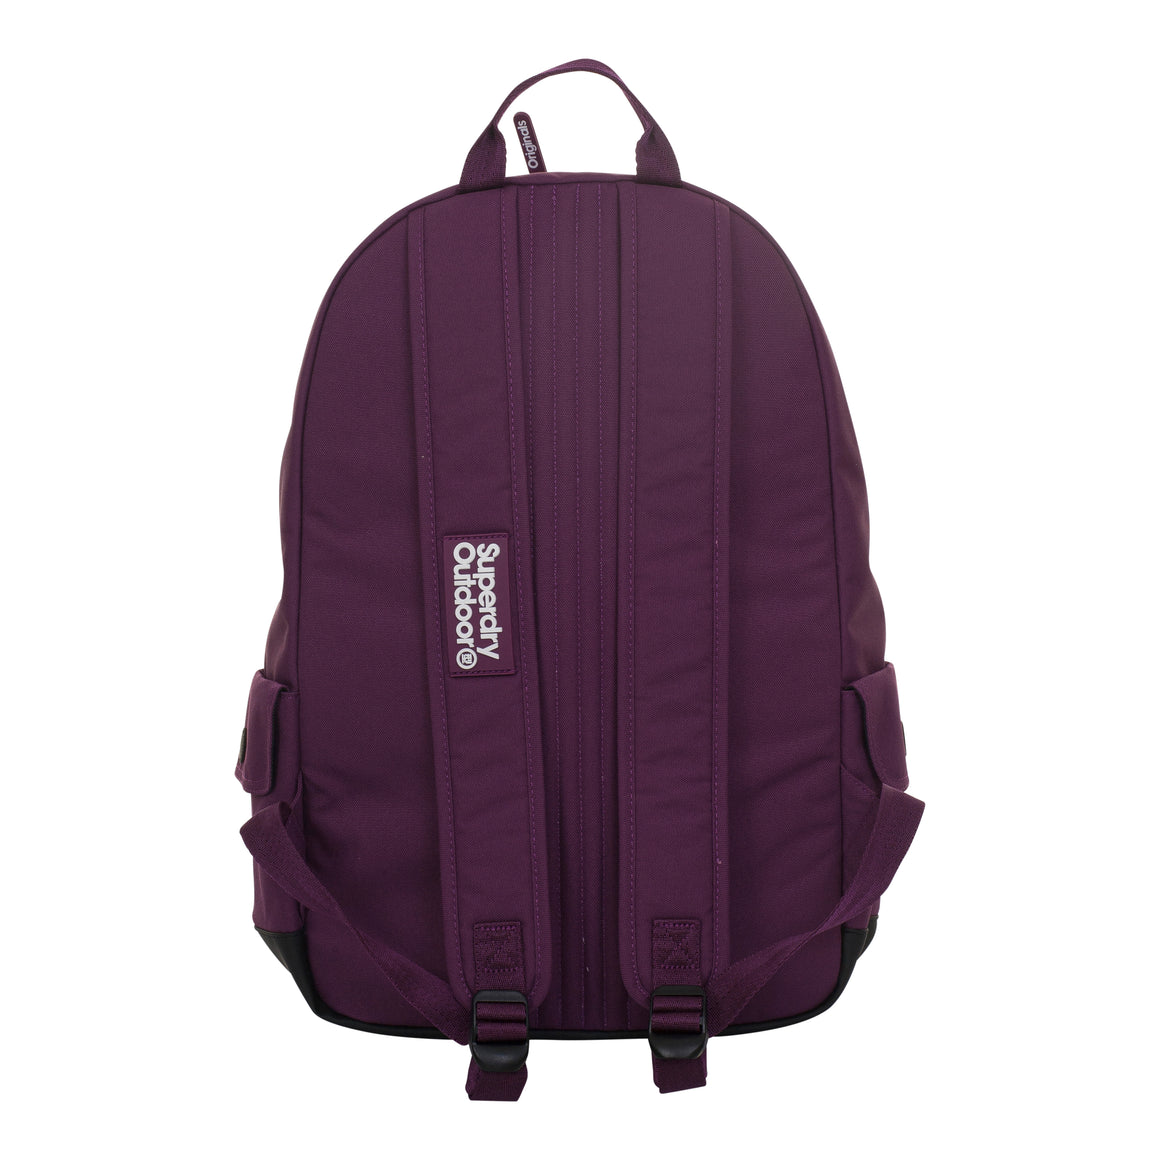 Leopard Montana Backpack for Women in Dark Purple